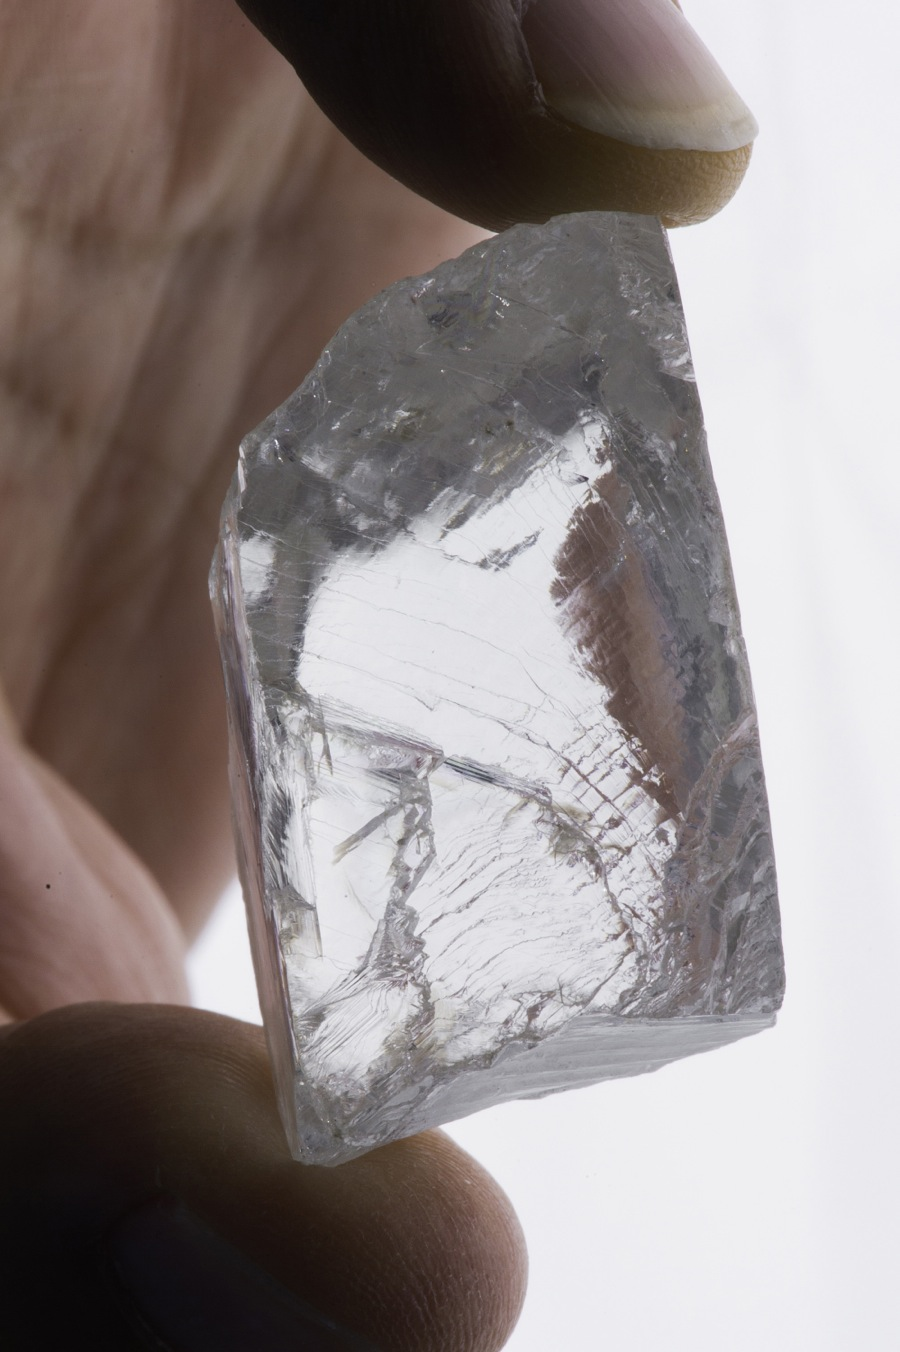 This is the $10 million-plus white diamond just found in South Africa